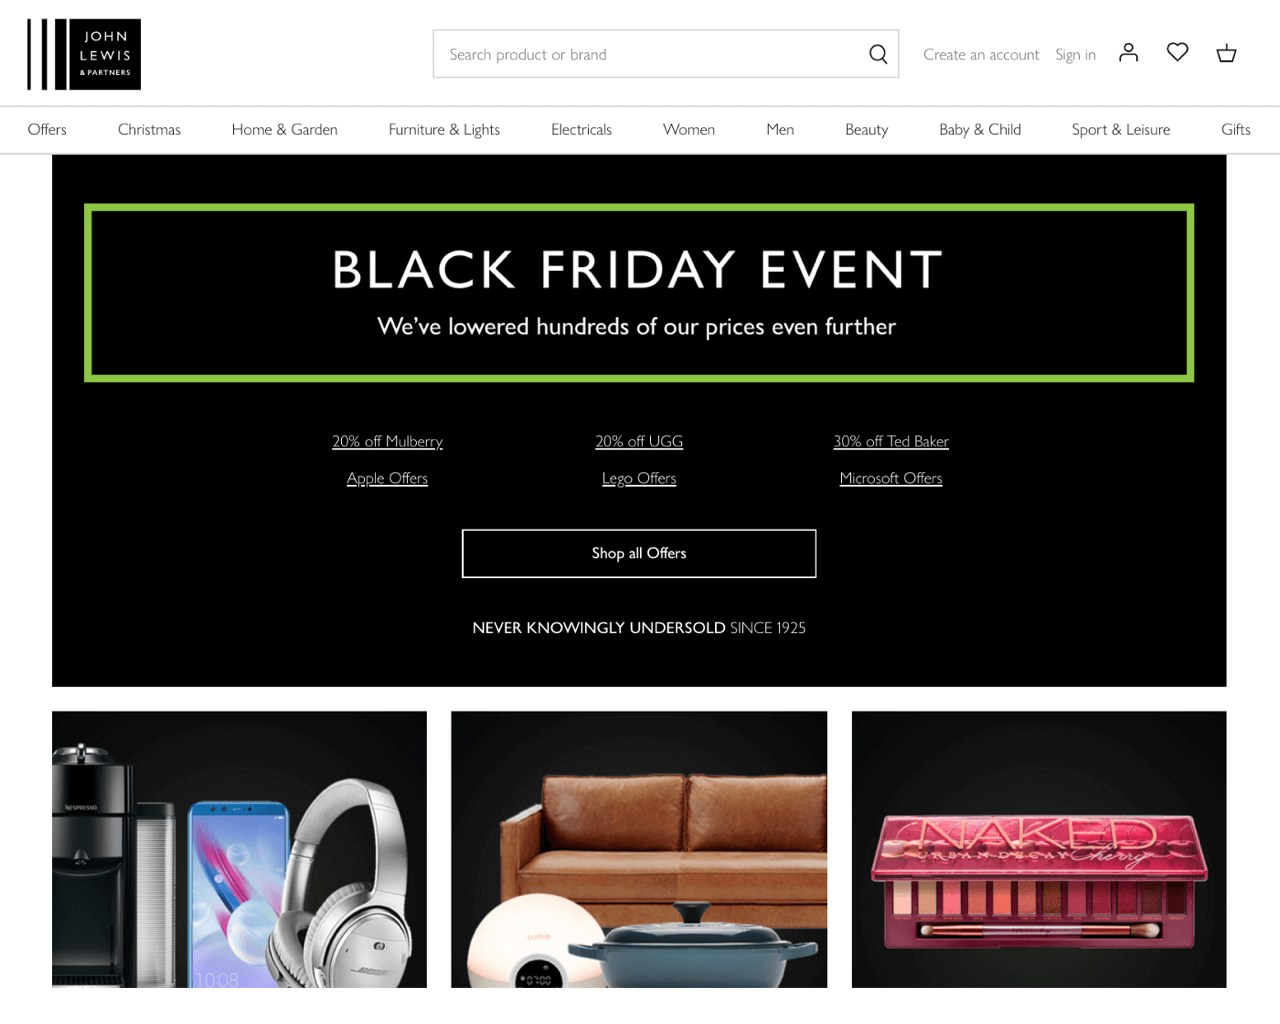 Banner designed to drive visitors to a Black Friday sale page